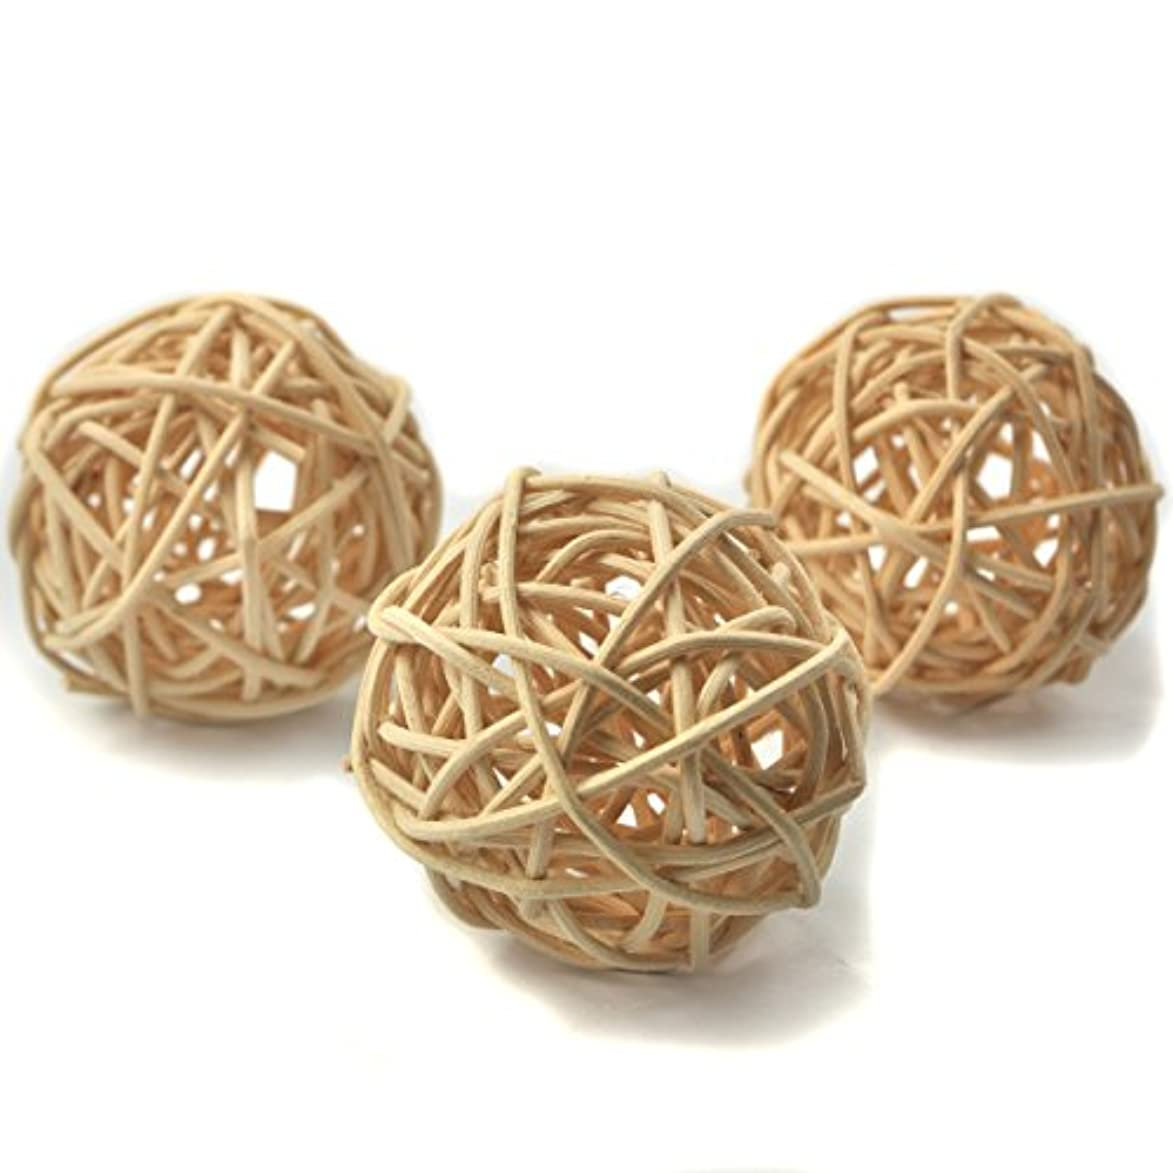 申し立てる大型トラック腐敗した(Diameter 6cm, Natural Color) - Ougual Set of 10pcs Wicker Rattan Balls Table Wedding Party Christmas Decorative...